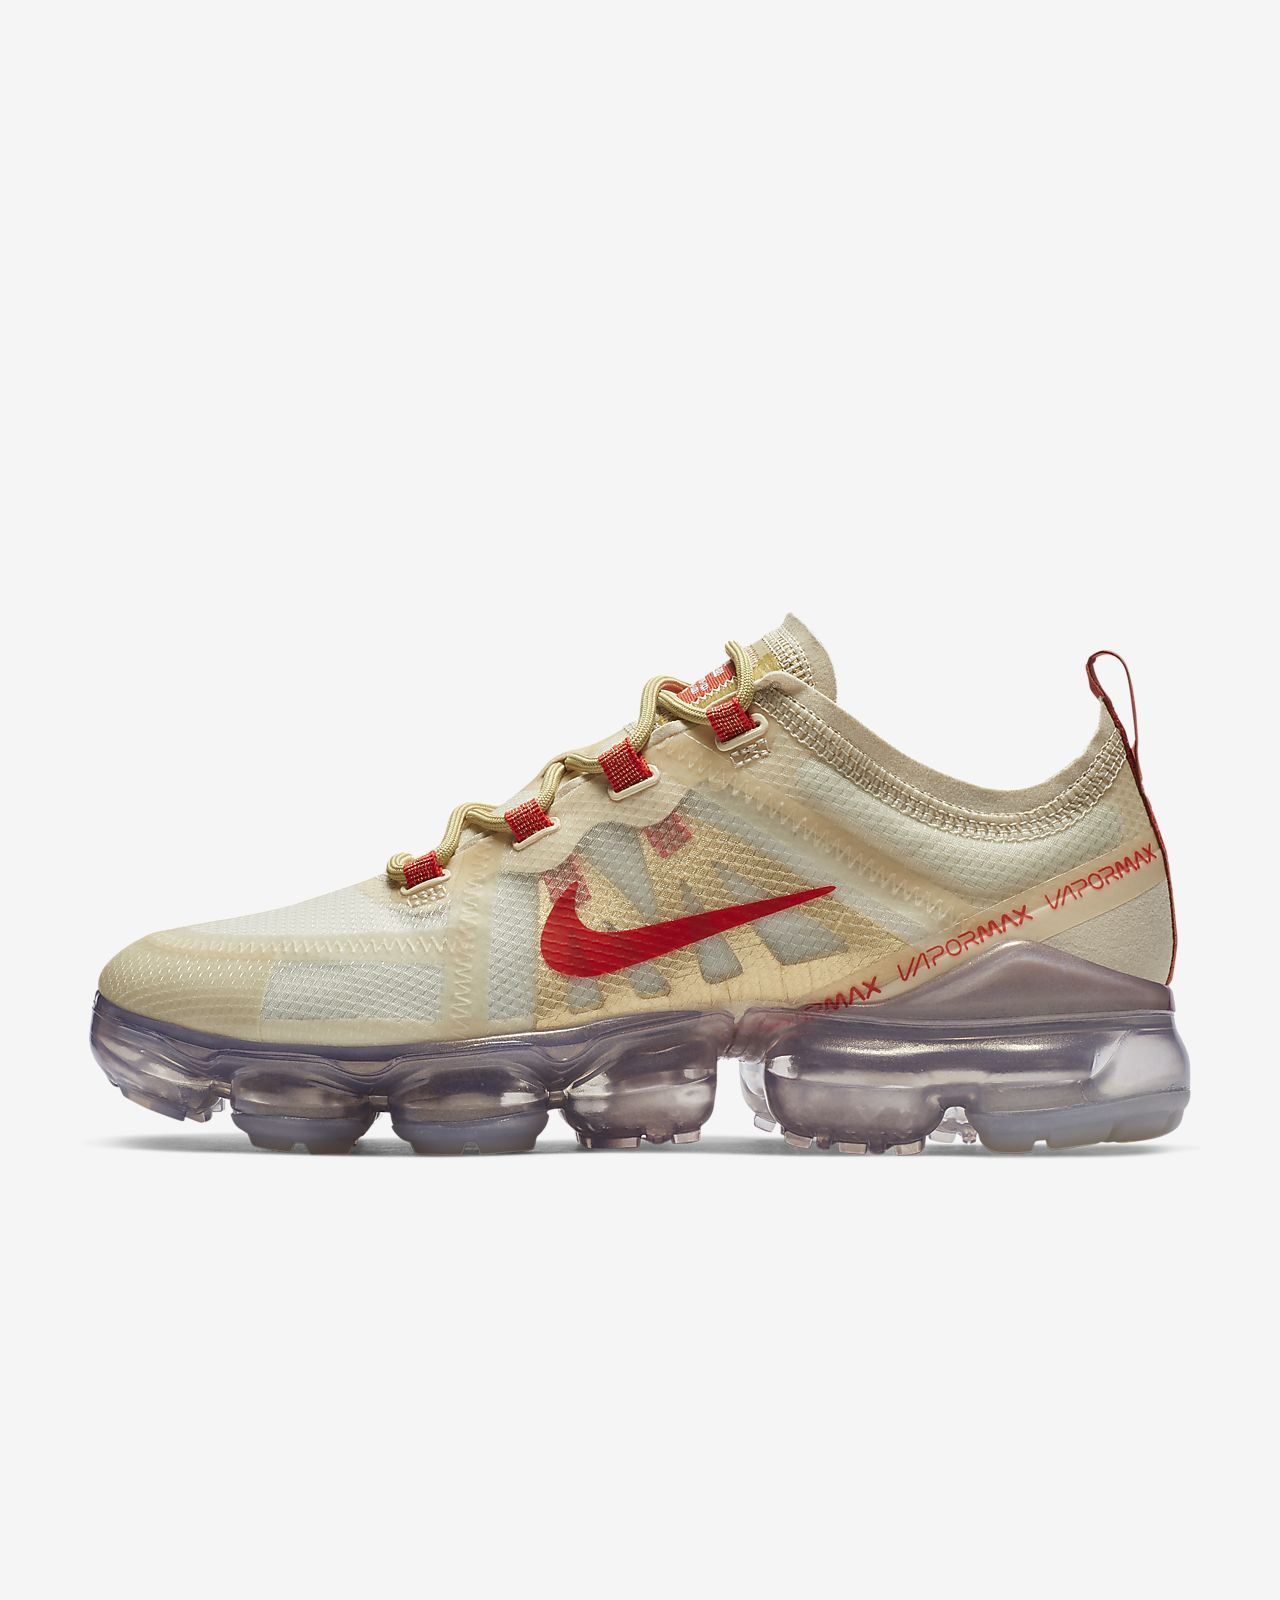 best sneakers 57b99 f0706 Women s Shoe. Nike Air VaporMax 2019 CNY